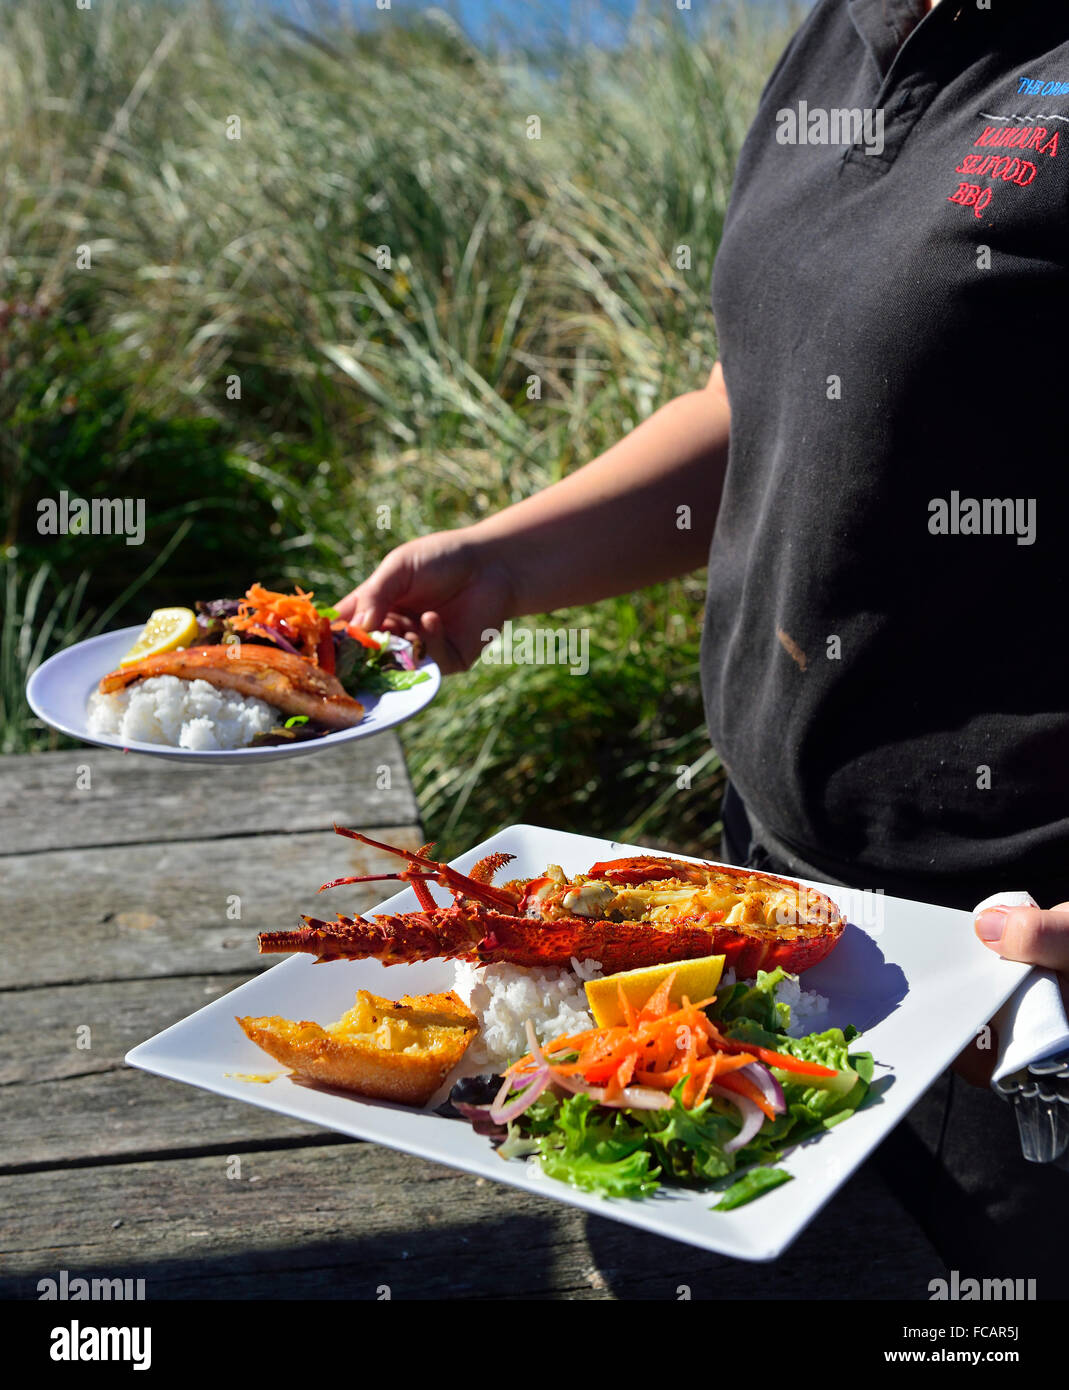 Crayfish meal served  to a road side table from Kaikoura Seafood BBQ Kiosk, Kaikoura. South Island New Zealand - Stock Image